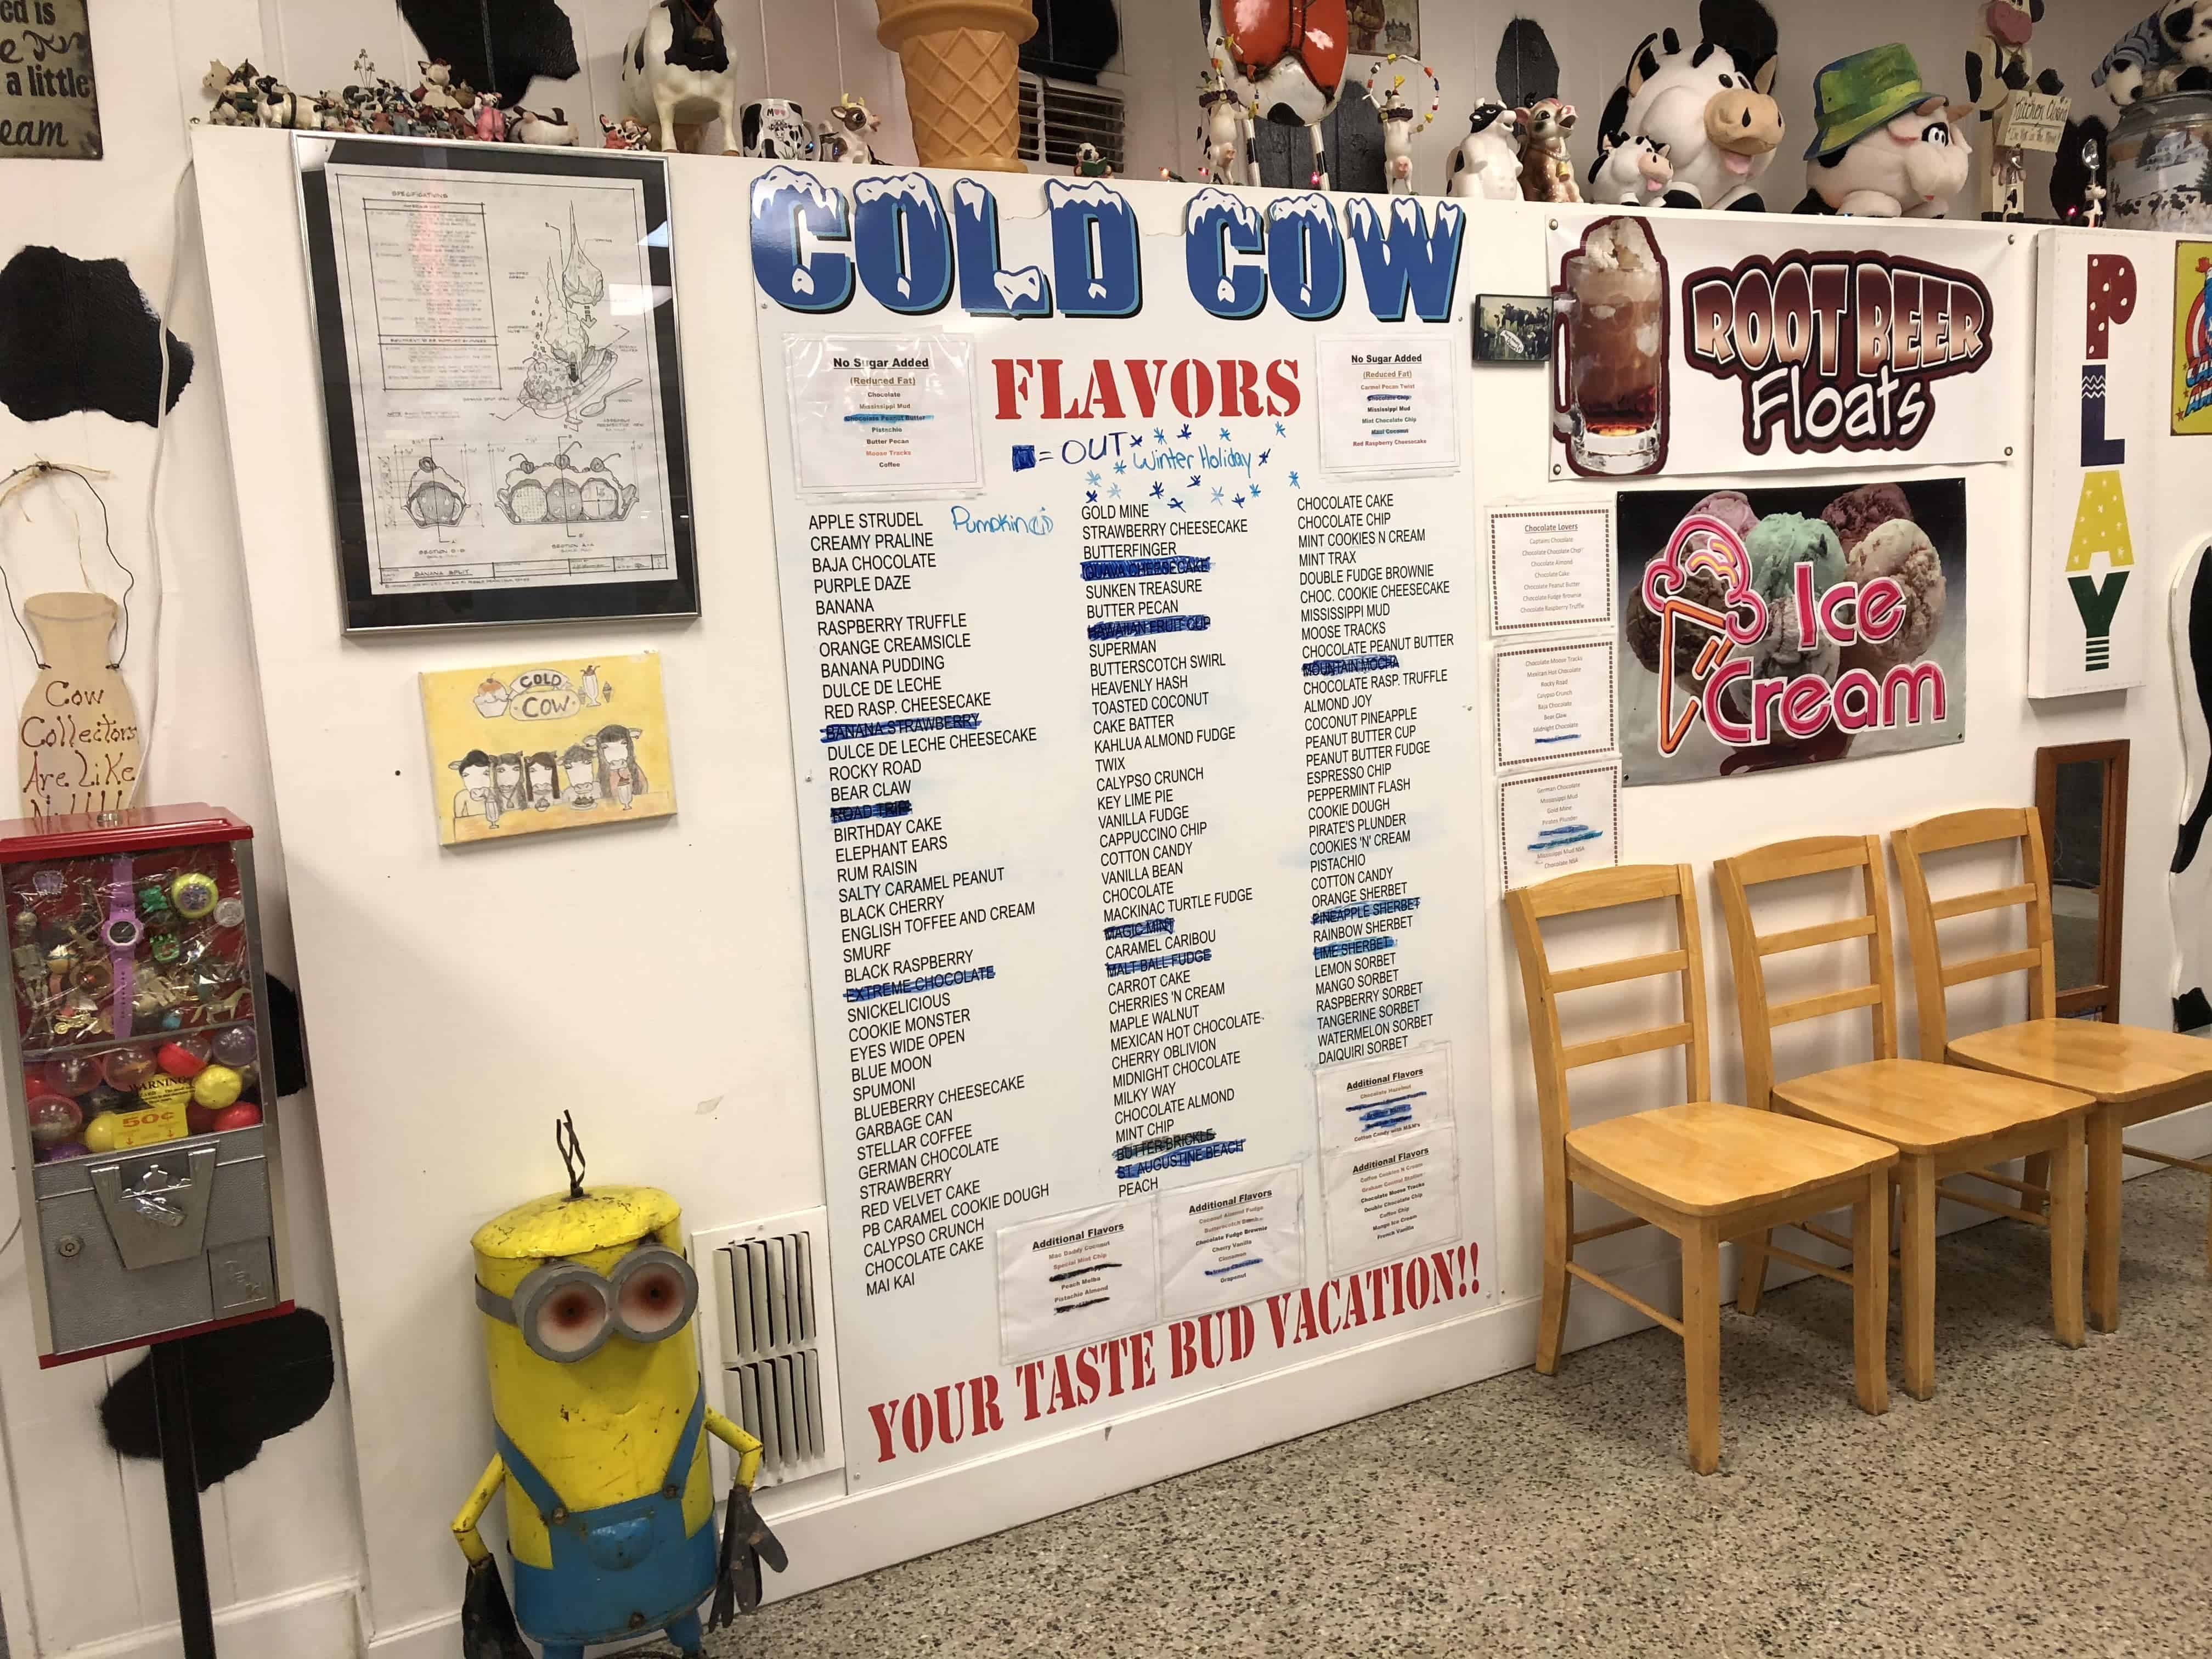 Cold Cow is a well-recommended place for ice cream or dessert lovers. What's great about this place is that they offer non-dairy options for lactose intolerant folks!